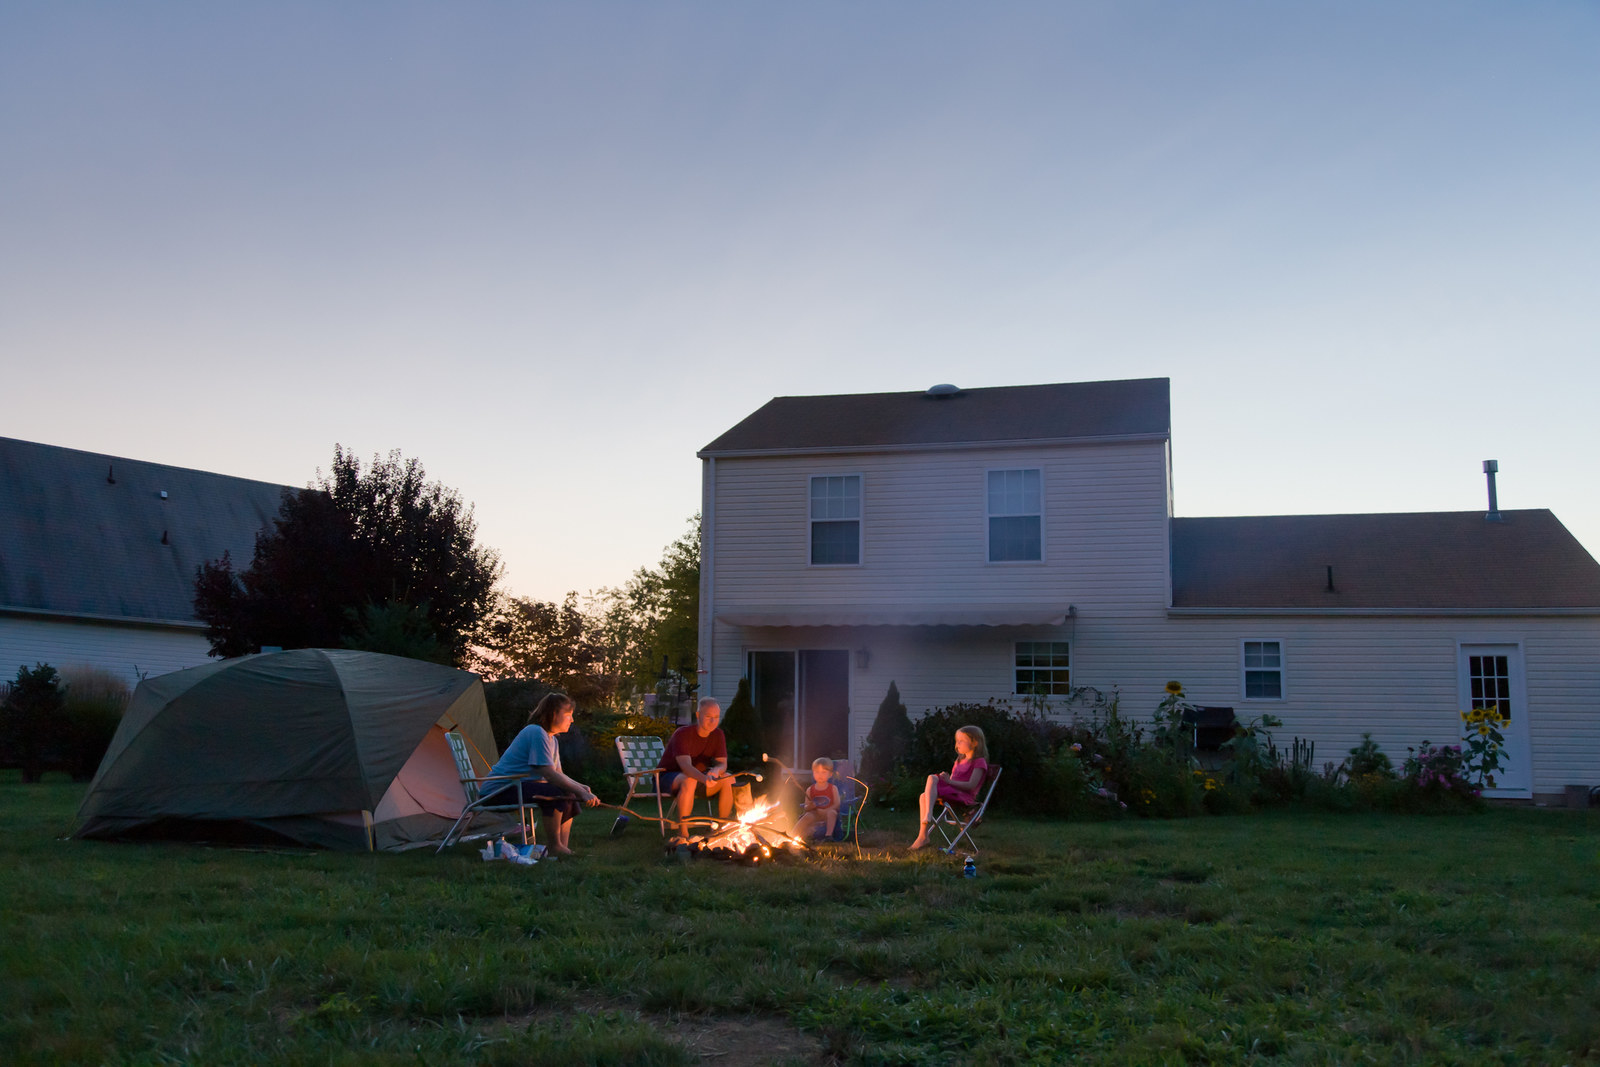 """Picnics at a local park or in the backyard are fun ways to get out of the house for free. Especially in the summertime, we set up a tent and go """"camping"""" for an at-home vacation.—maggieh4f4e6c863"""